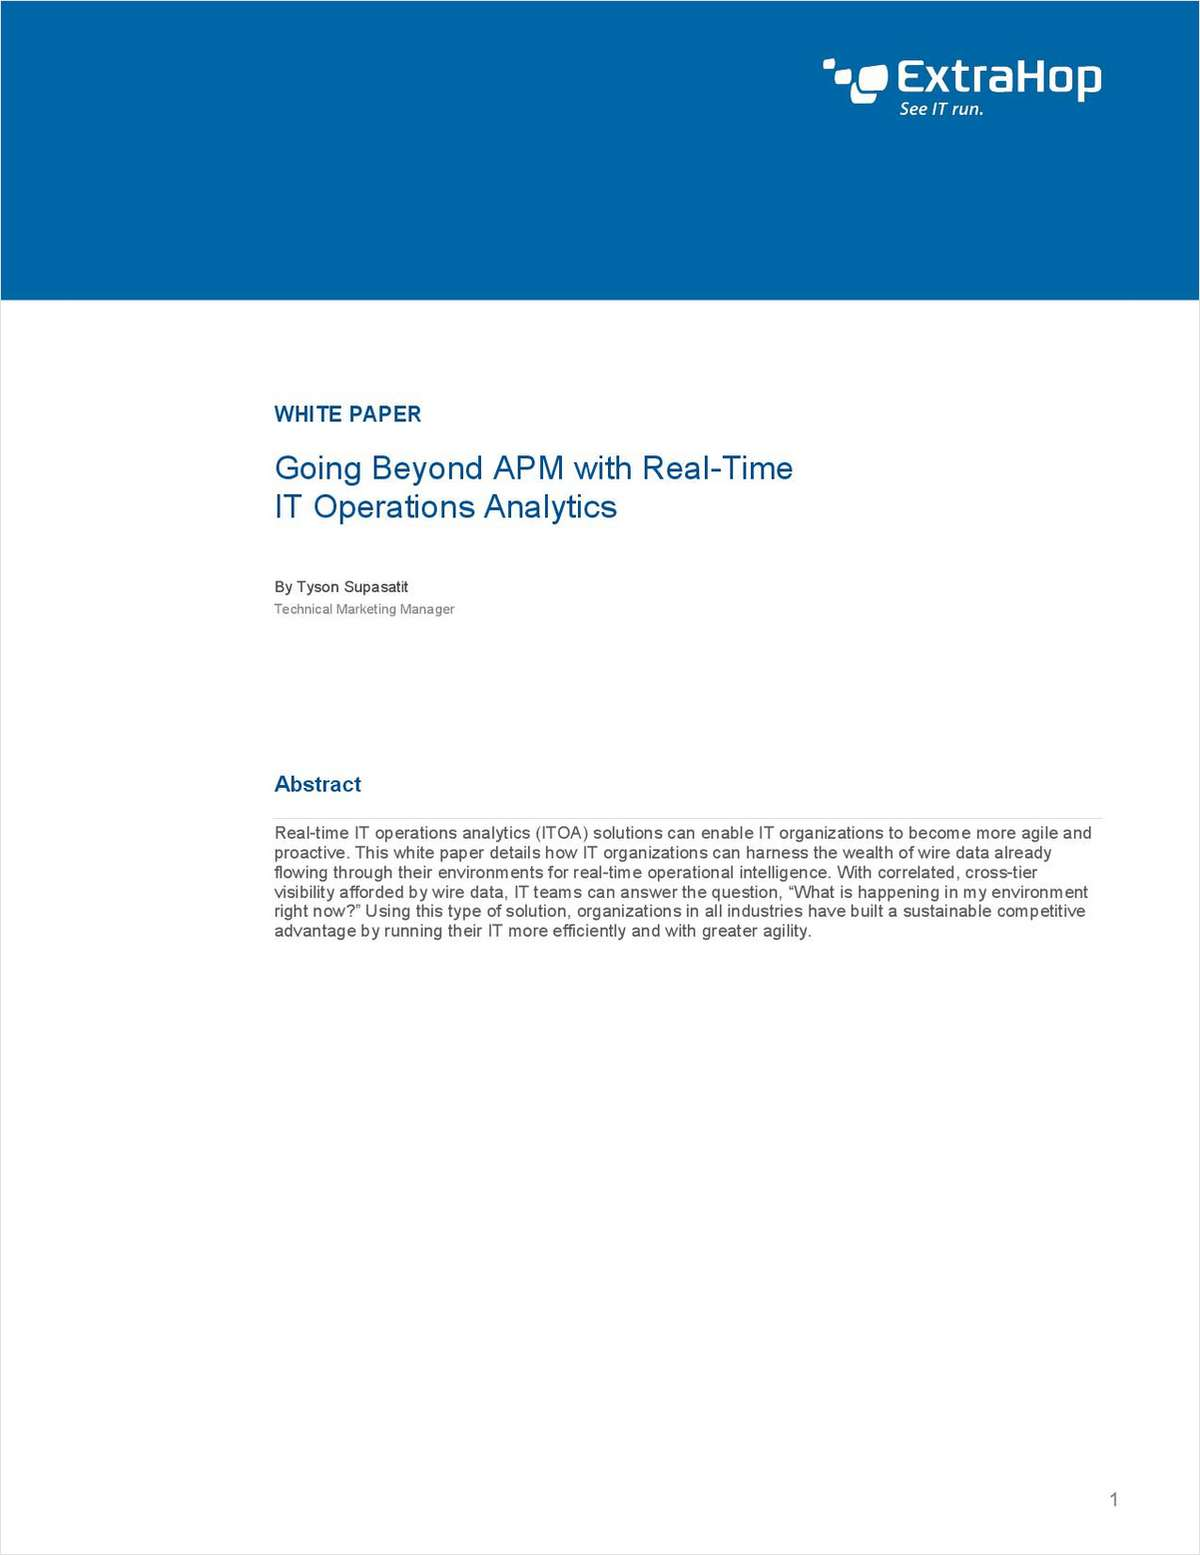 Go Beyond APM with Real-Time IT Operations Analytics